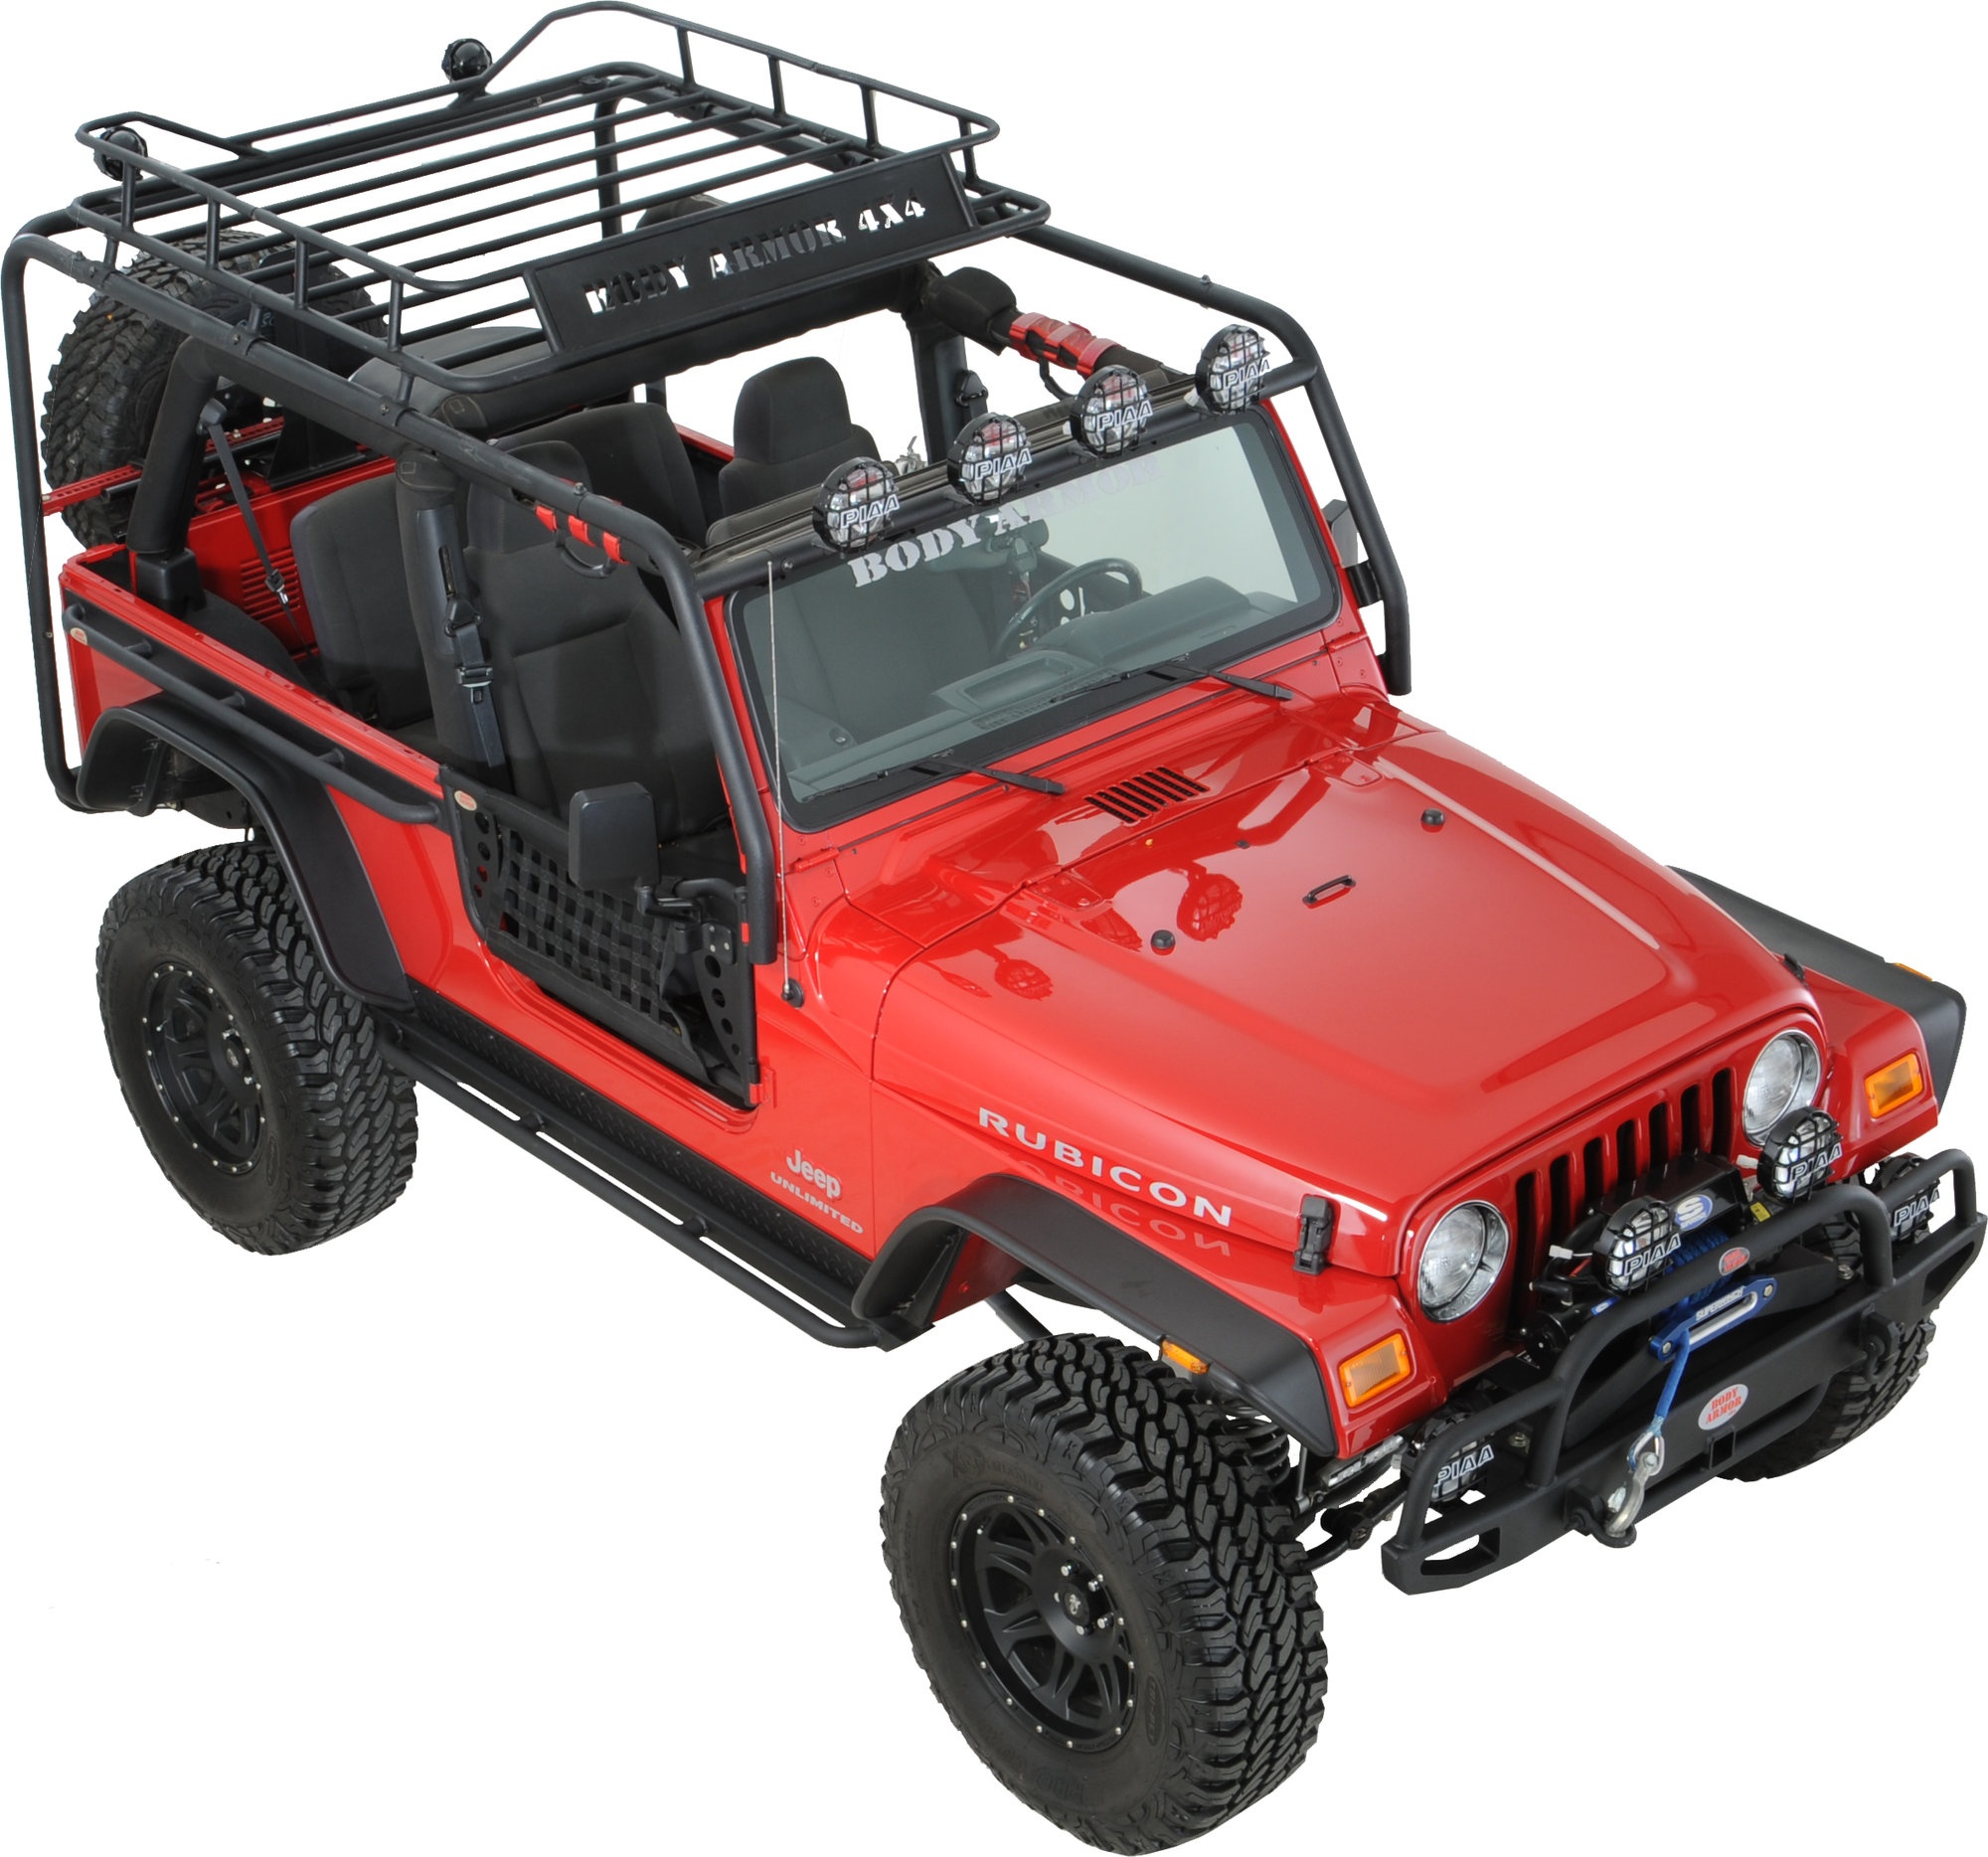 Body Armor Tj 6125 Roof Rack Base Kit For 97 06 Jeep